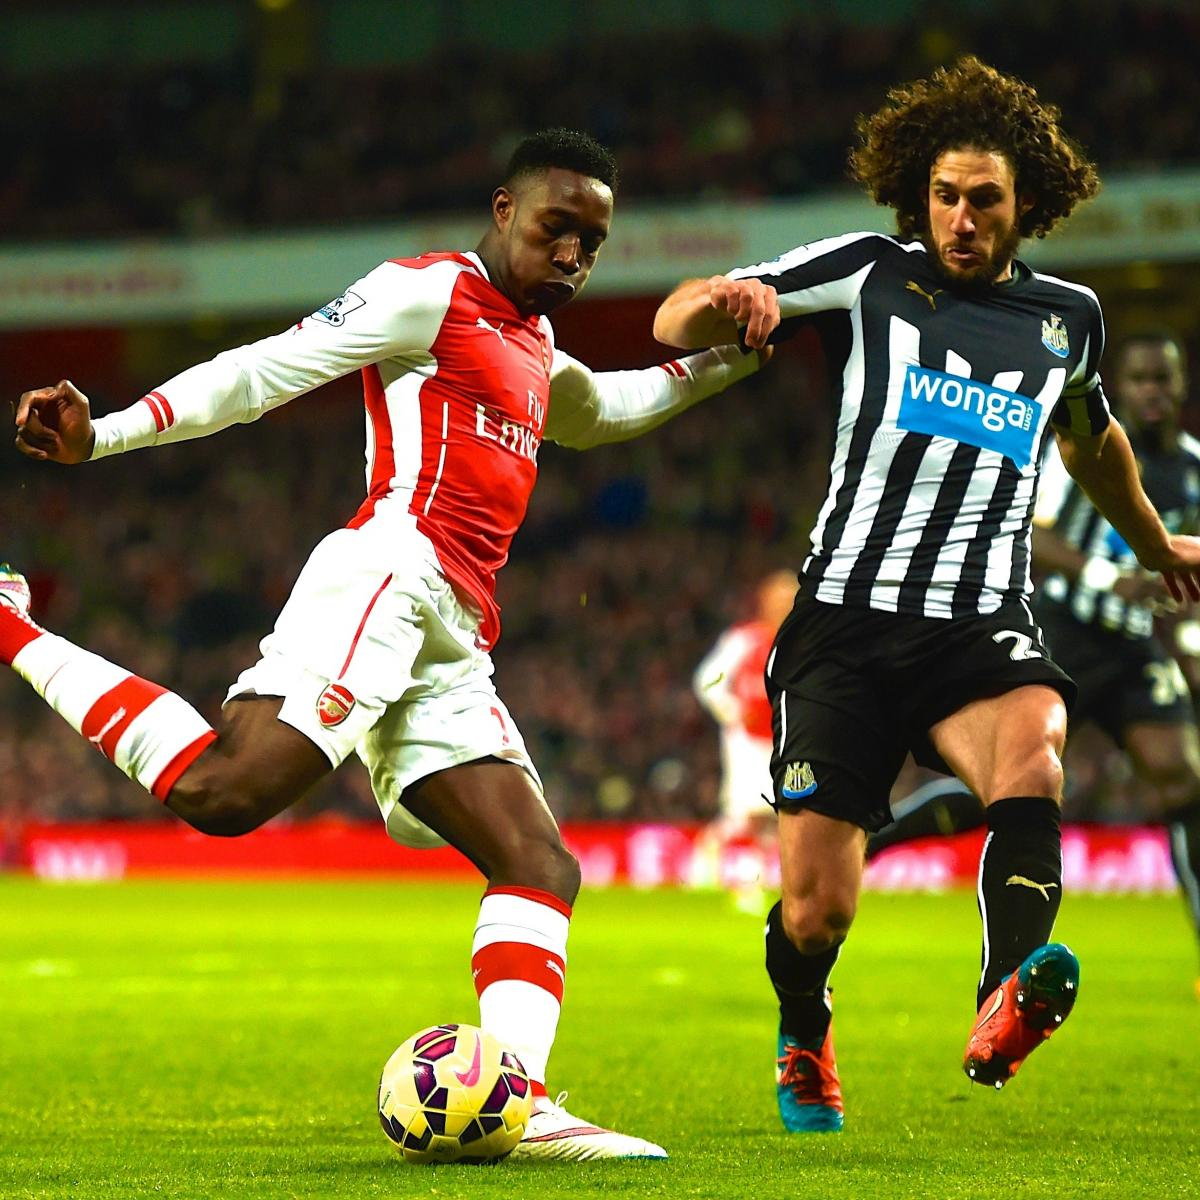 Psg Vs Chelsea Live Score Highlights From Champions: Arsenal Vs. Newcastle United: Live Score, Highlights From